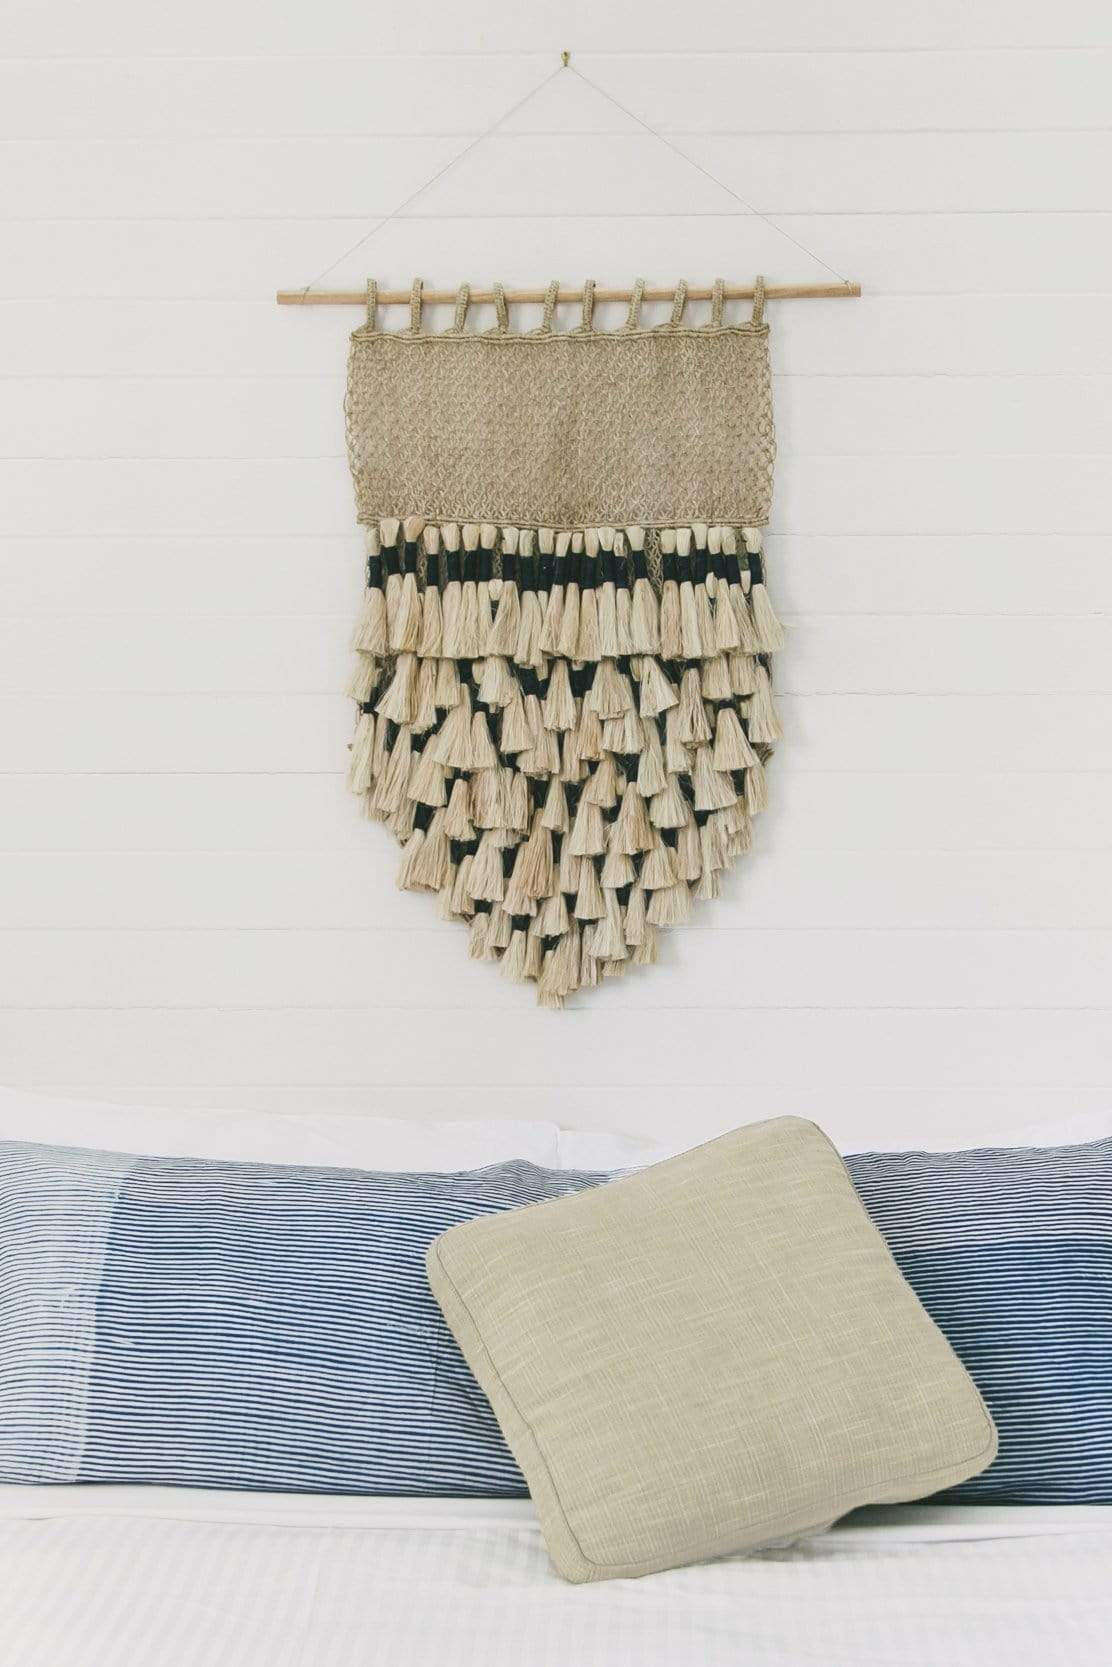 The Dharma Door Wall Hangings Wall Hanging - Natural Jute Tassels with Indigo Tassel Wall Hanging - Natural & Indigo